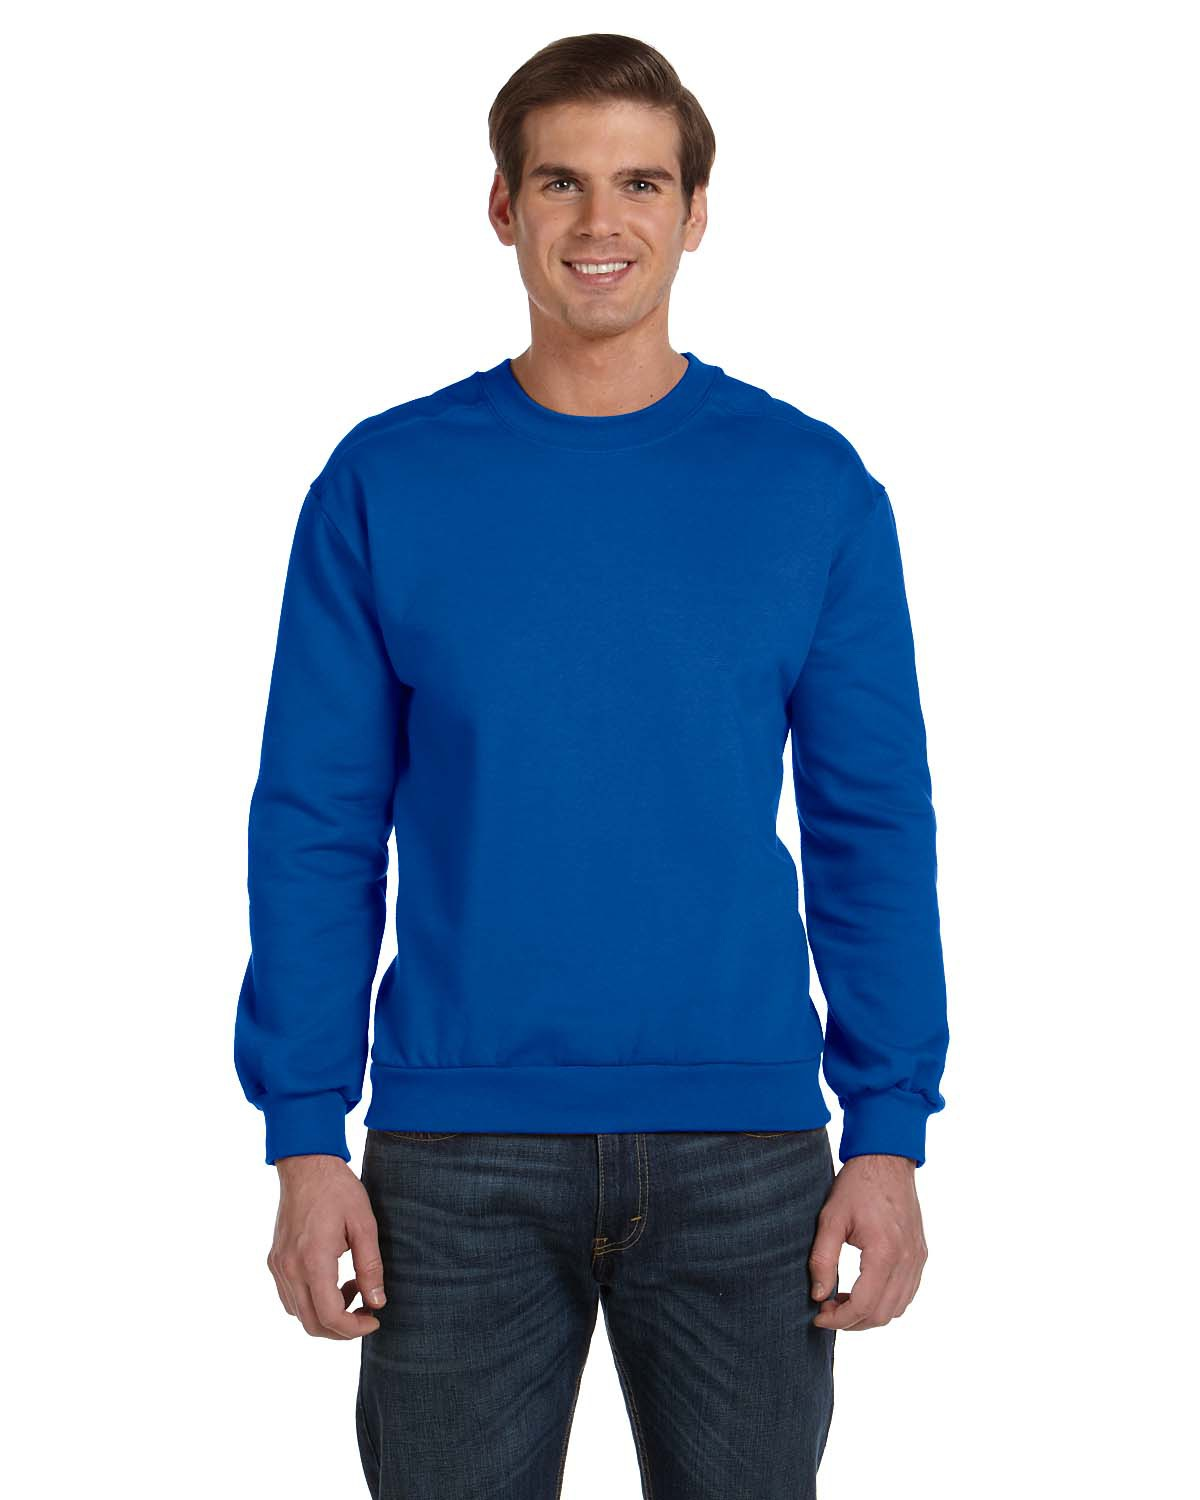 Anvil 71000 - Men's Fashion Crew Neck Sweatshirt